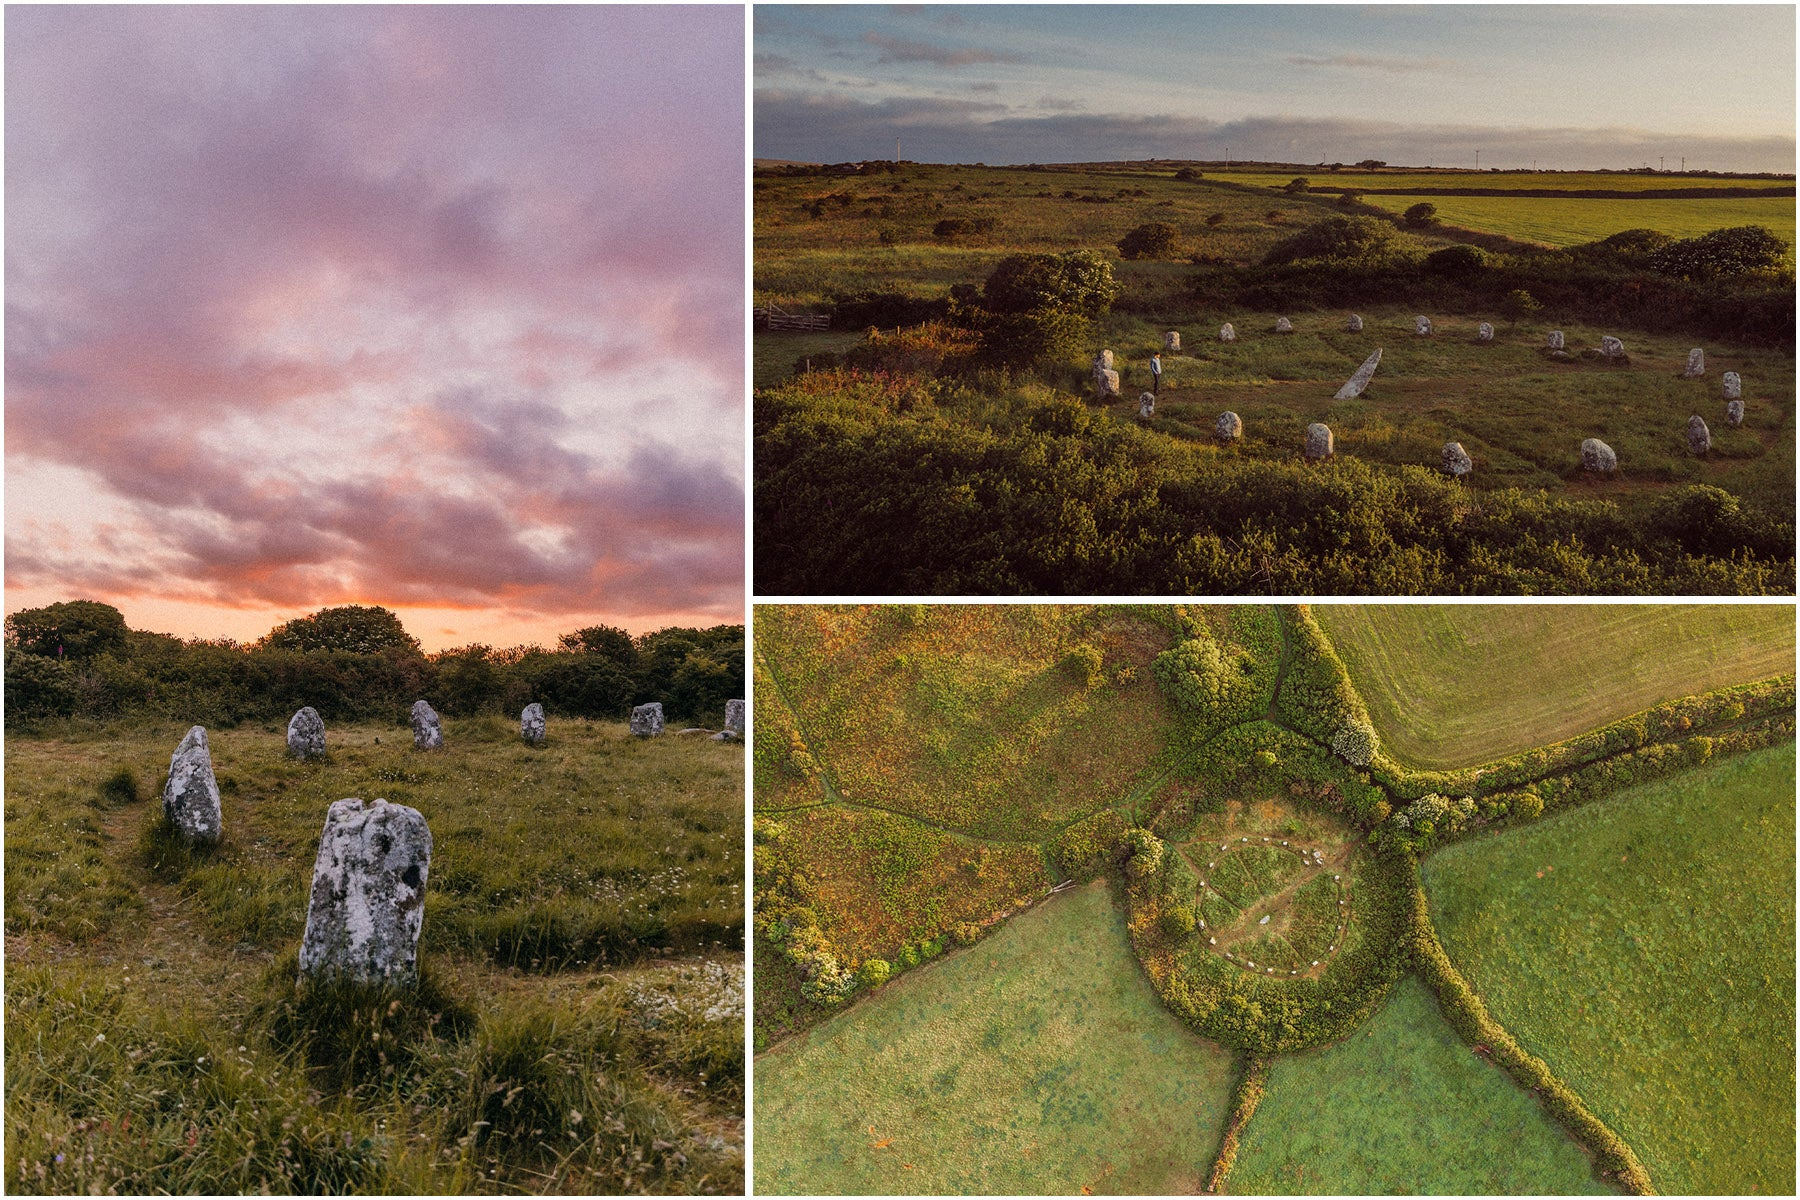 Different perspectives on the Boscawen-ûn stone circle in west penwith